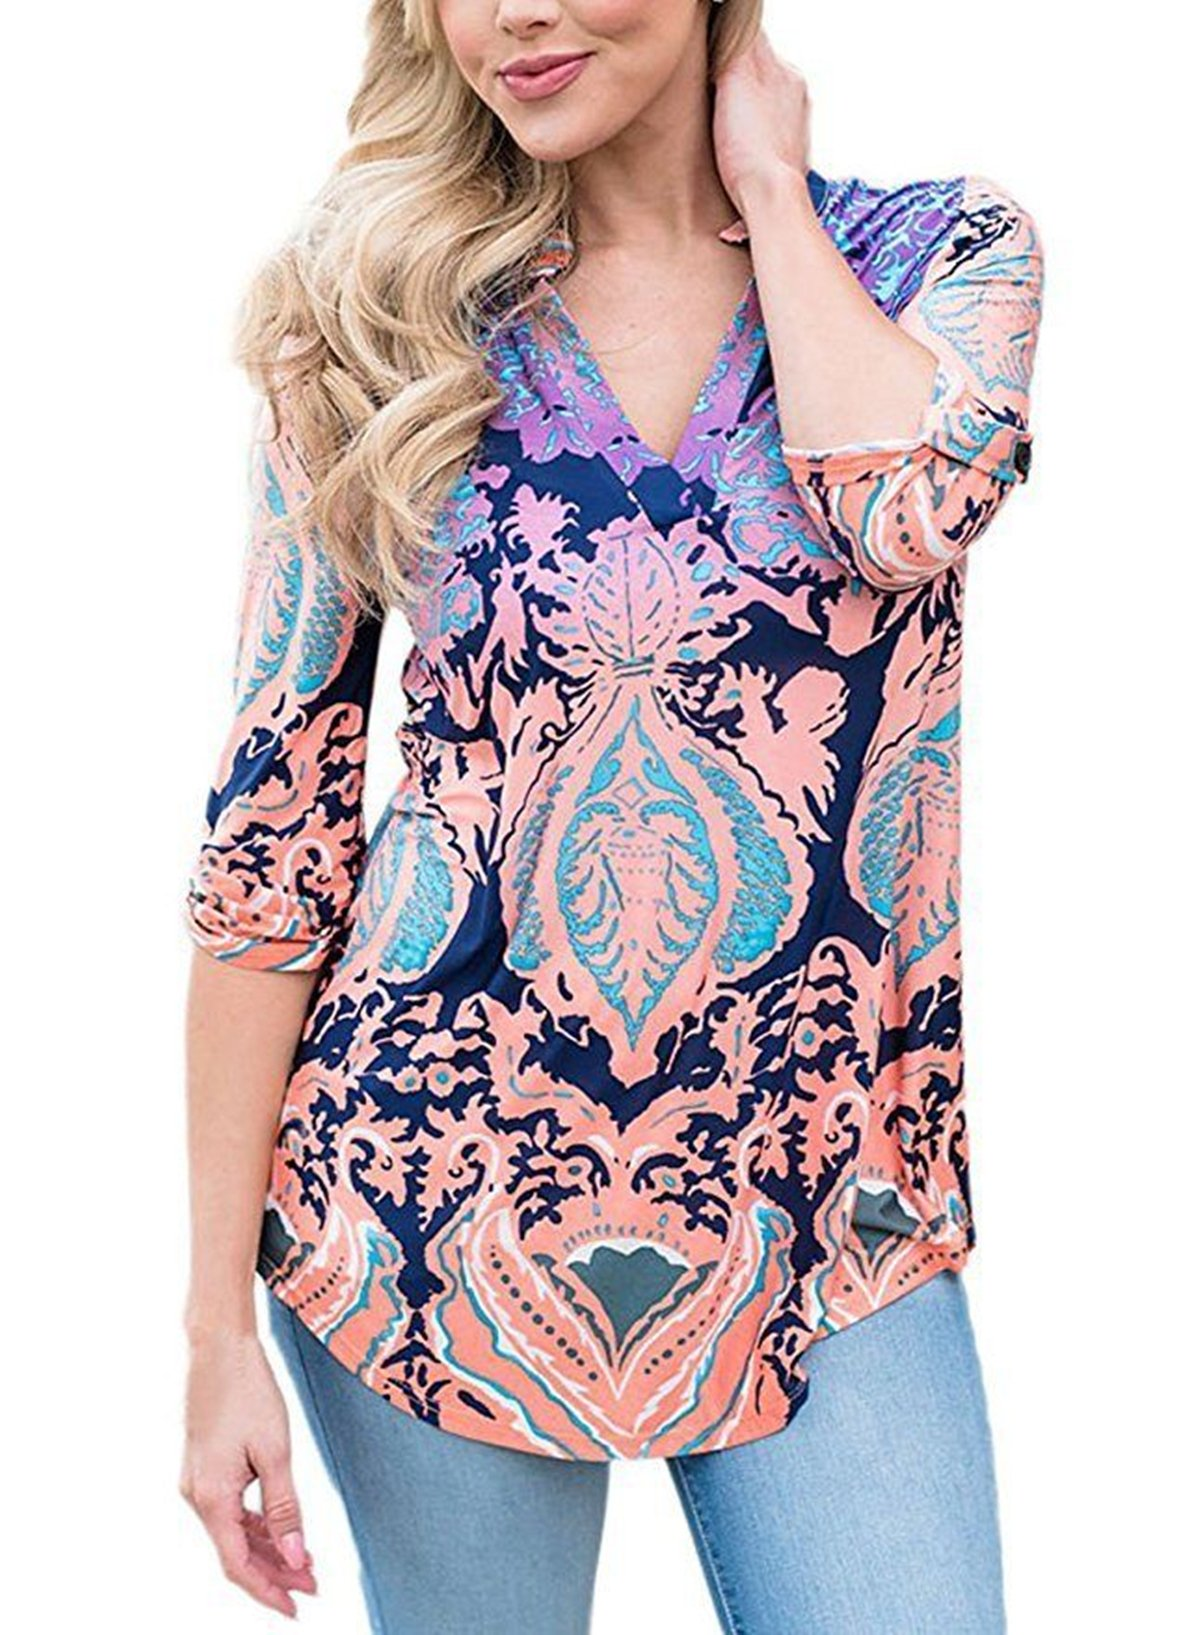 Sheshares Women 3 4 Tab Sleeve Shirts V Neck Tunic Floral Print Tops Casual Blouse